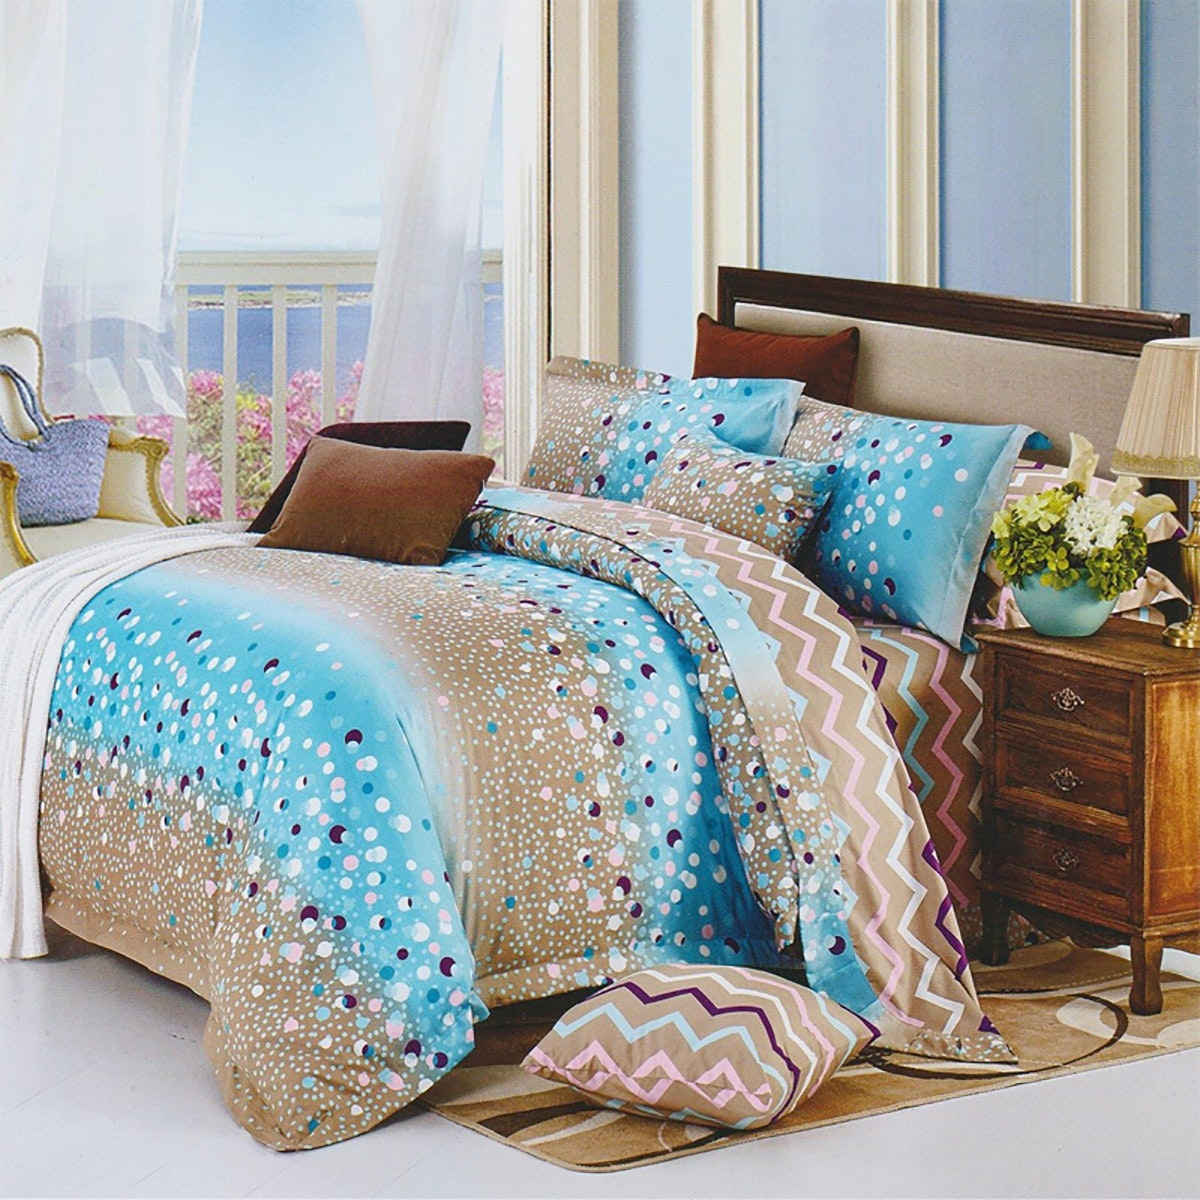 Sleep Buddy Set Sprei Blue Circle Cotton Sateen 160x200x30